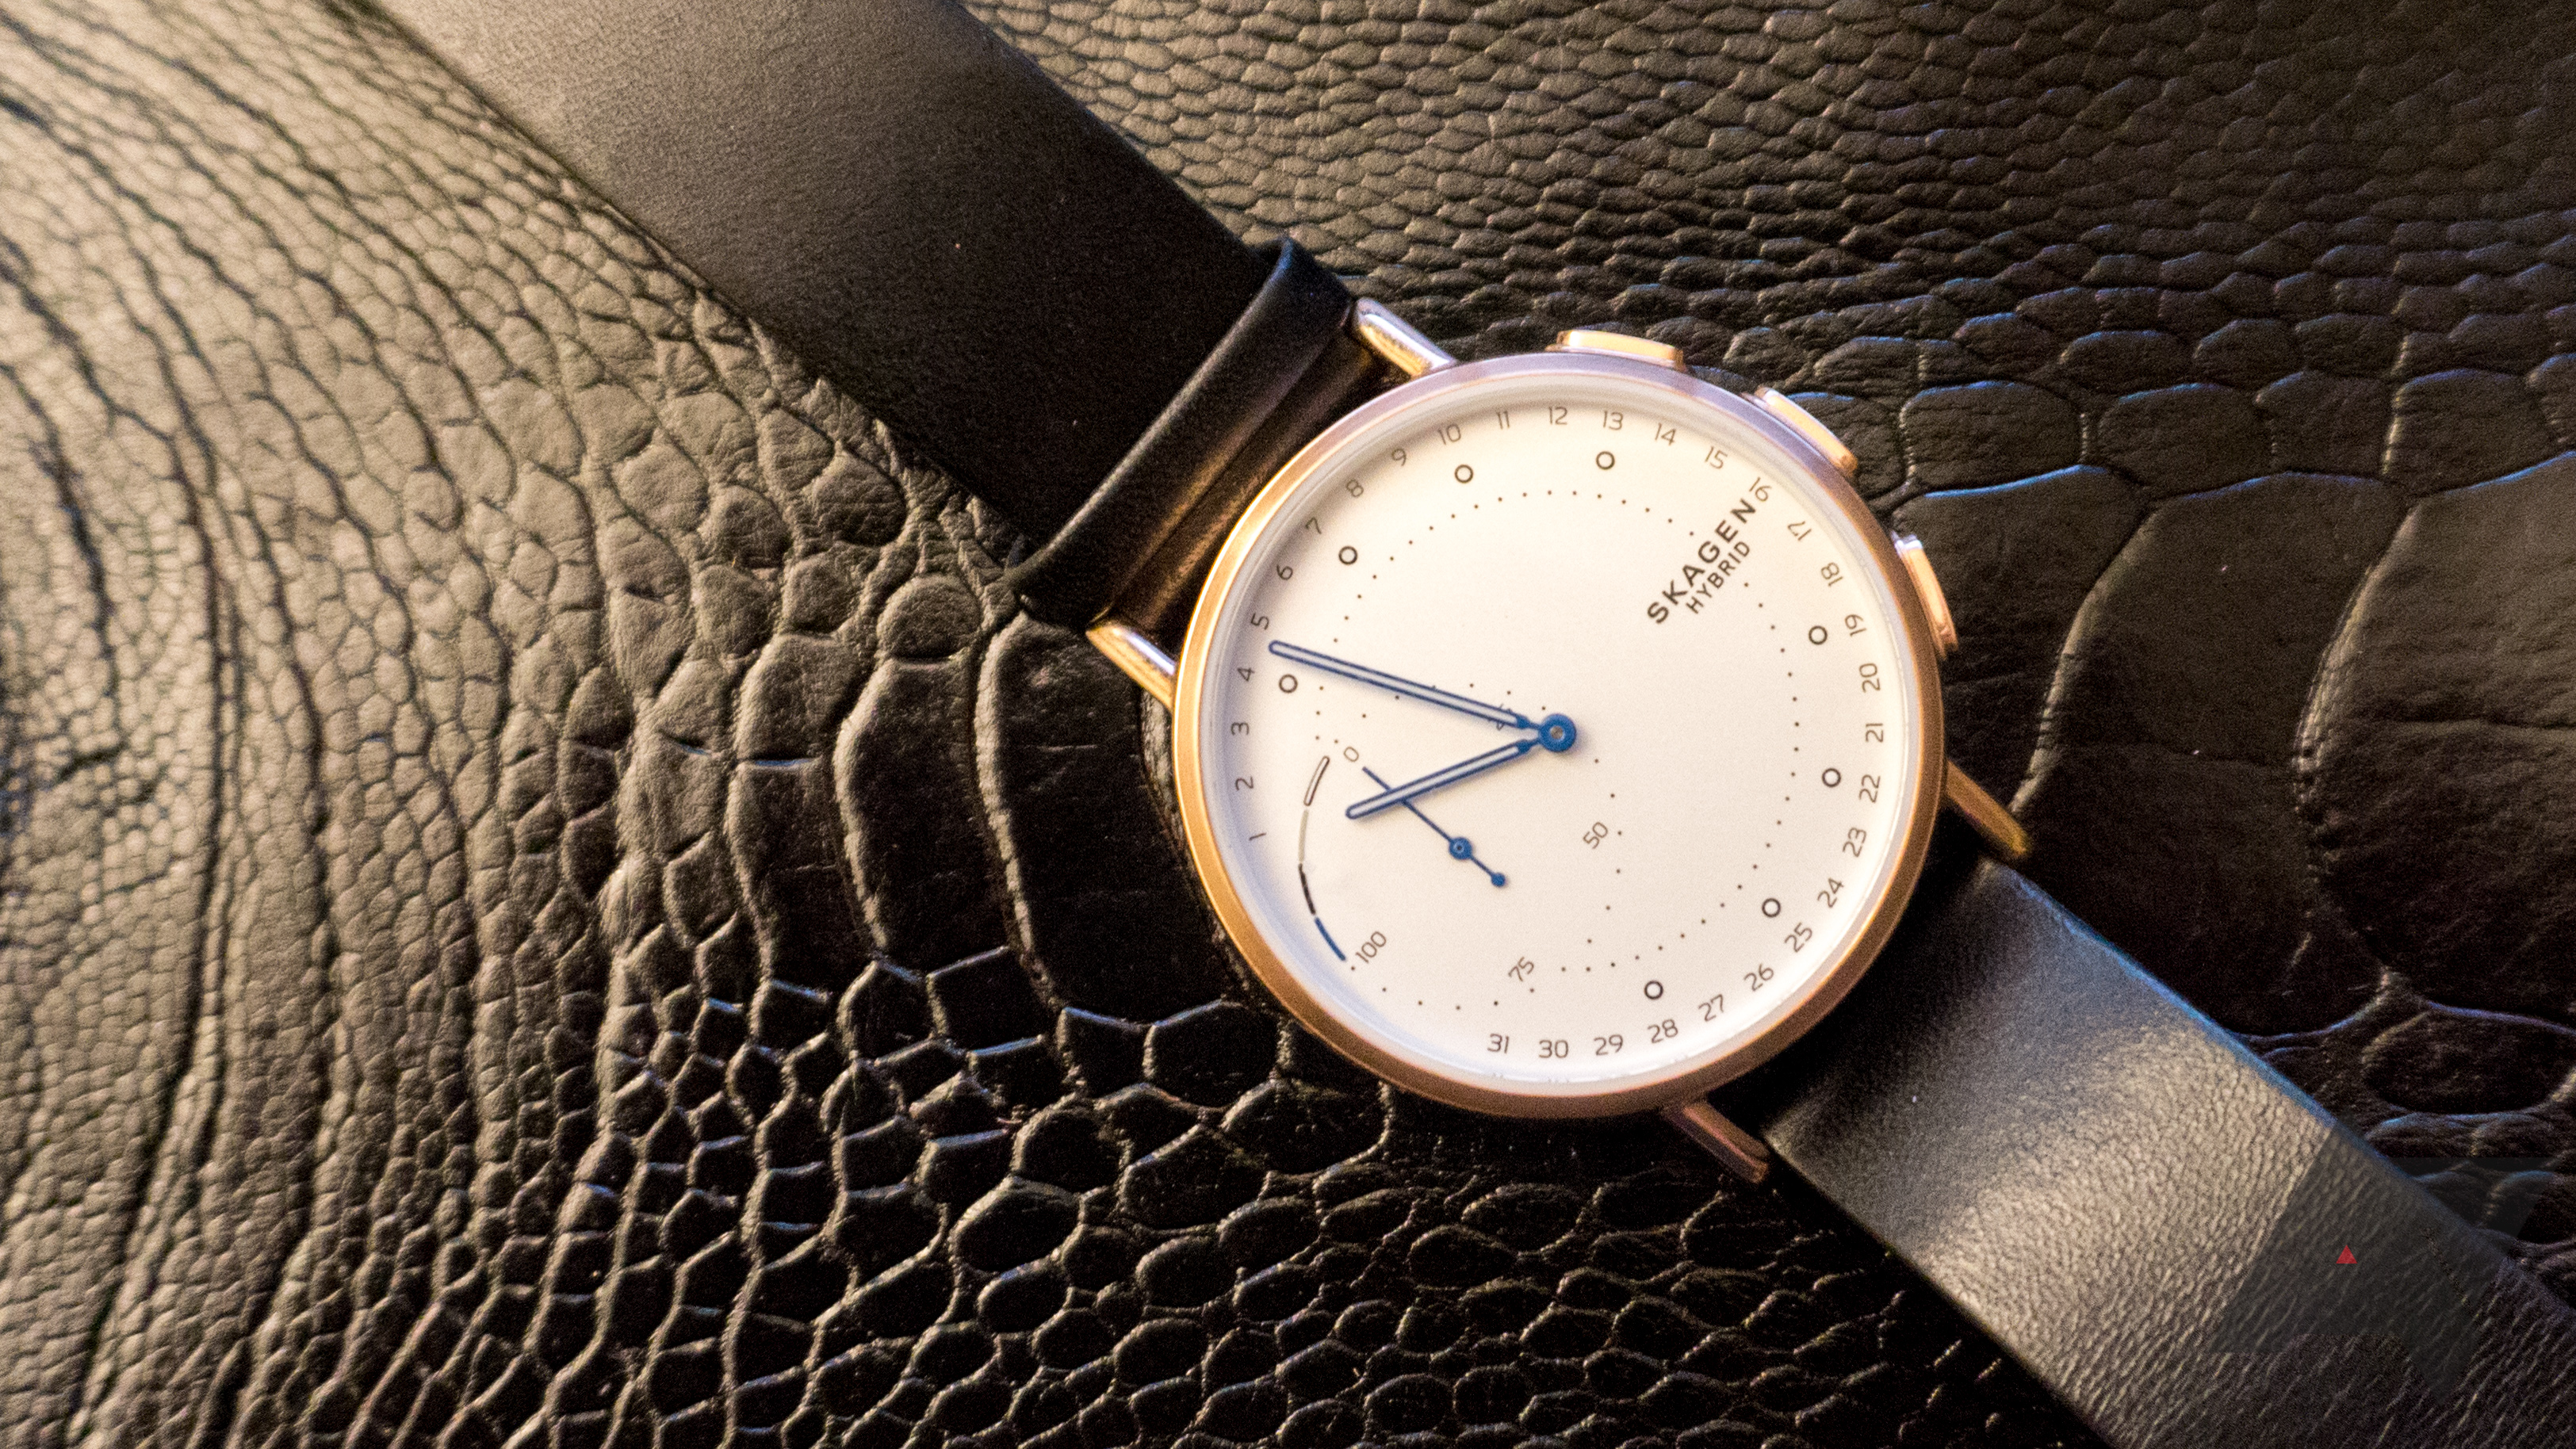 39bef264d98 Skagen Connected Signatur Hybrid review  Limited smartwatch functionality  in an attractive package